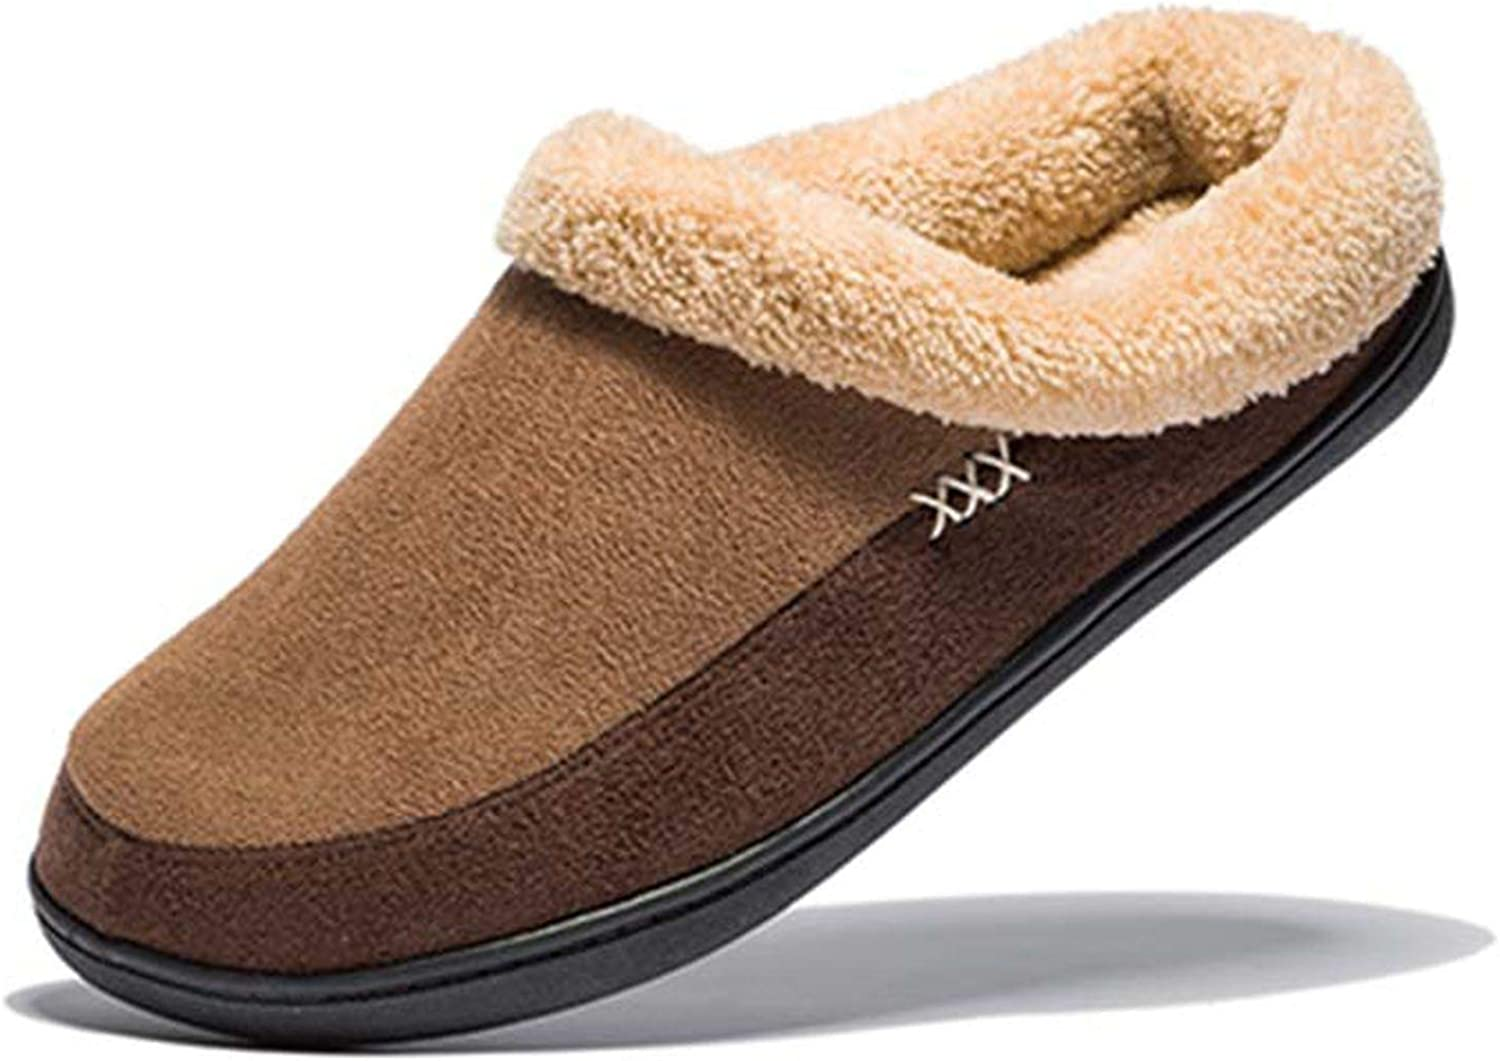 Brand Winter Home Thick Cotton Slippers Non-Slip Indoor Plush Flat Men's shoes